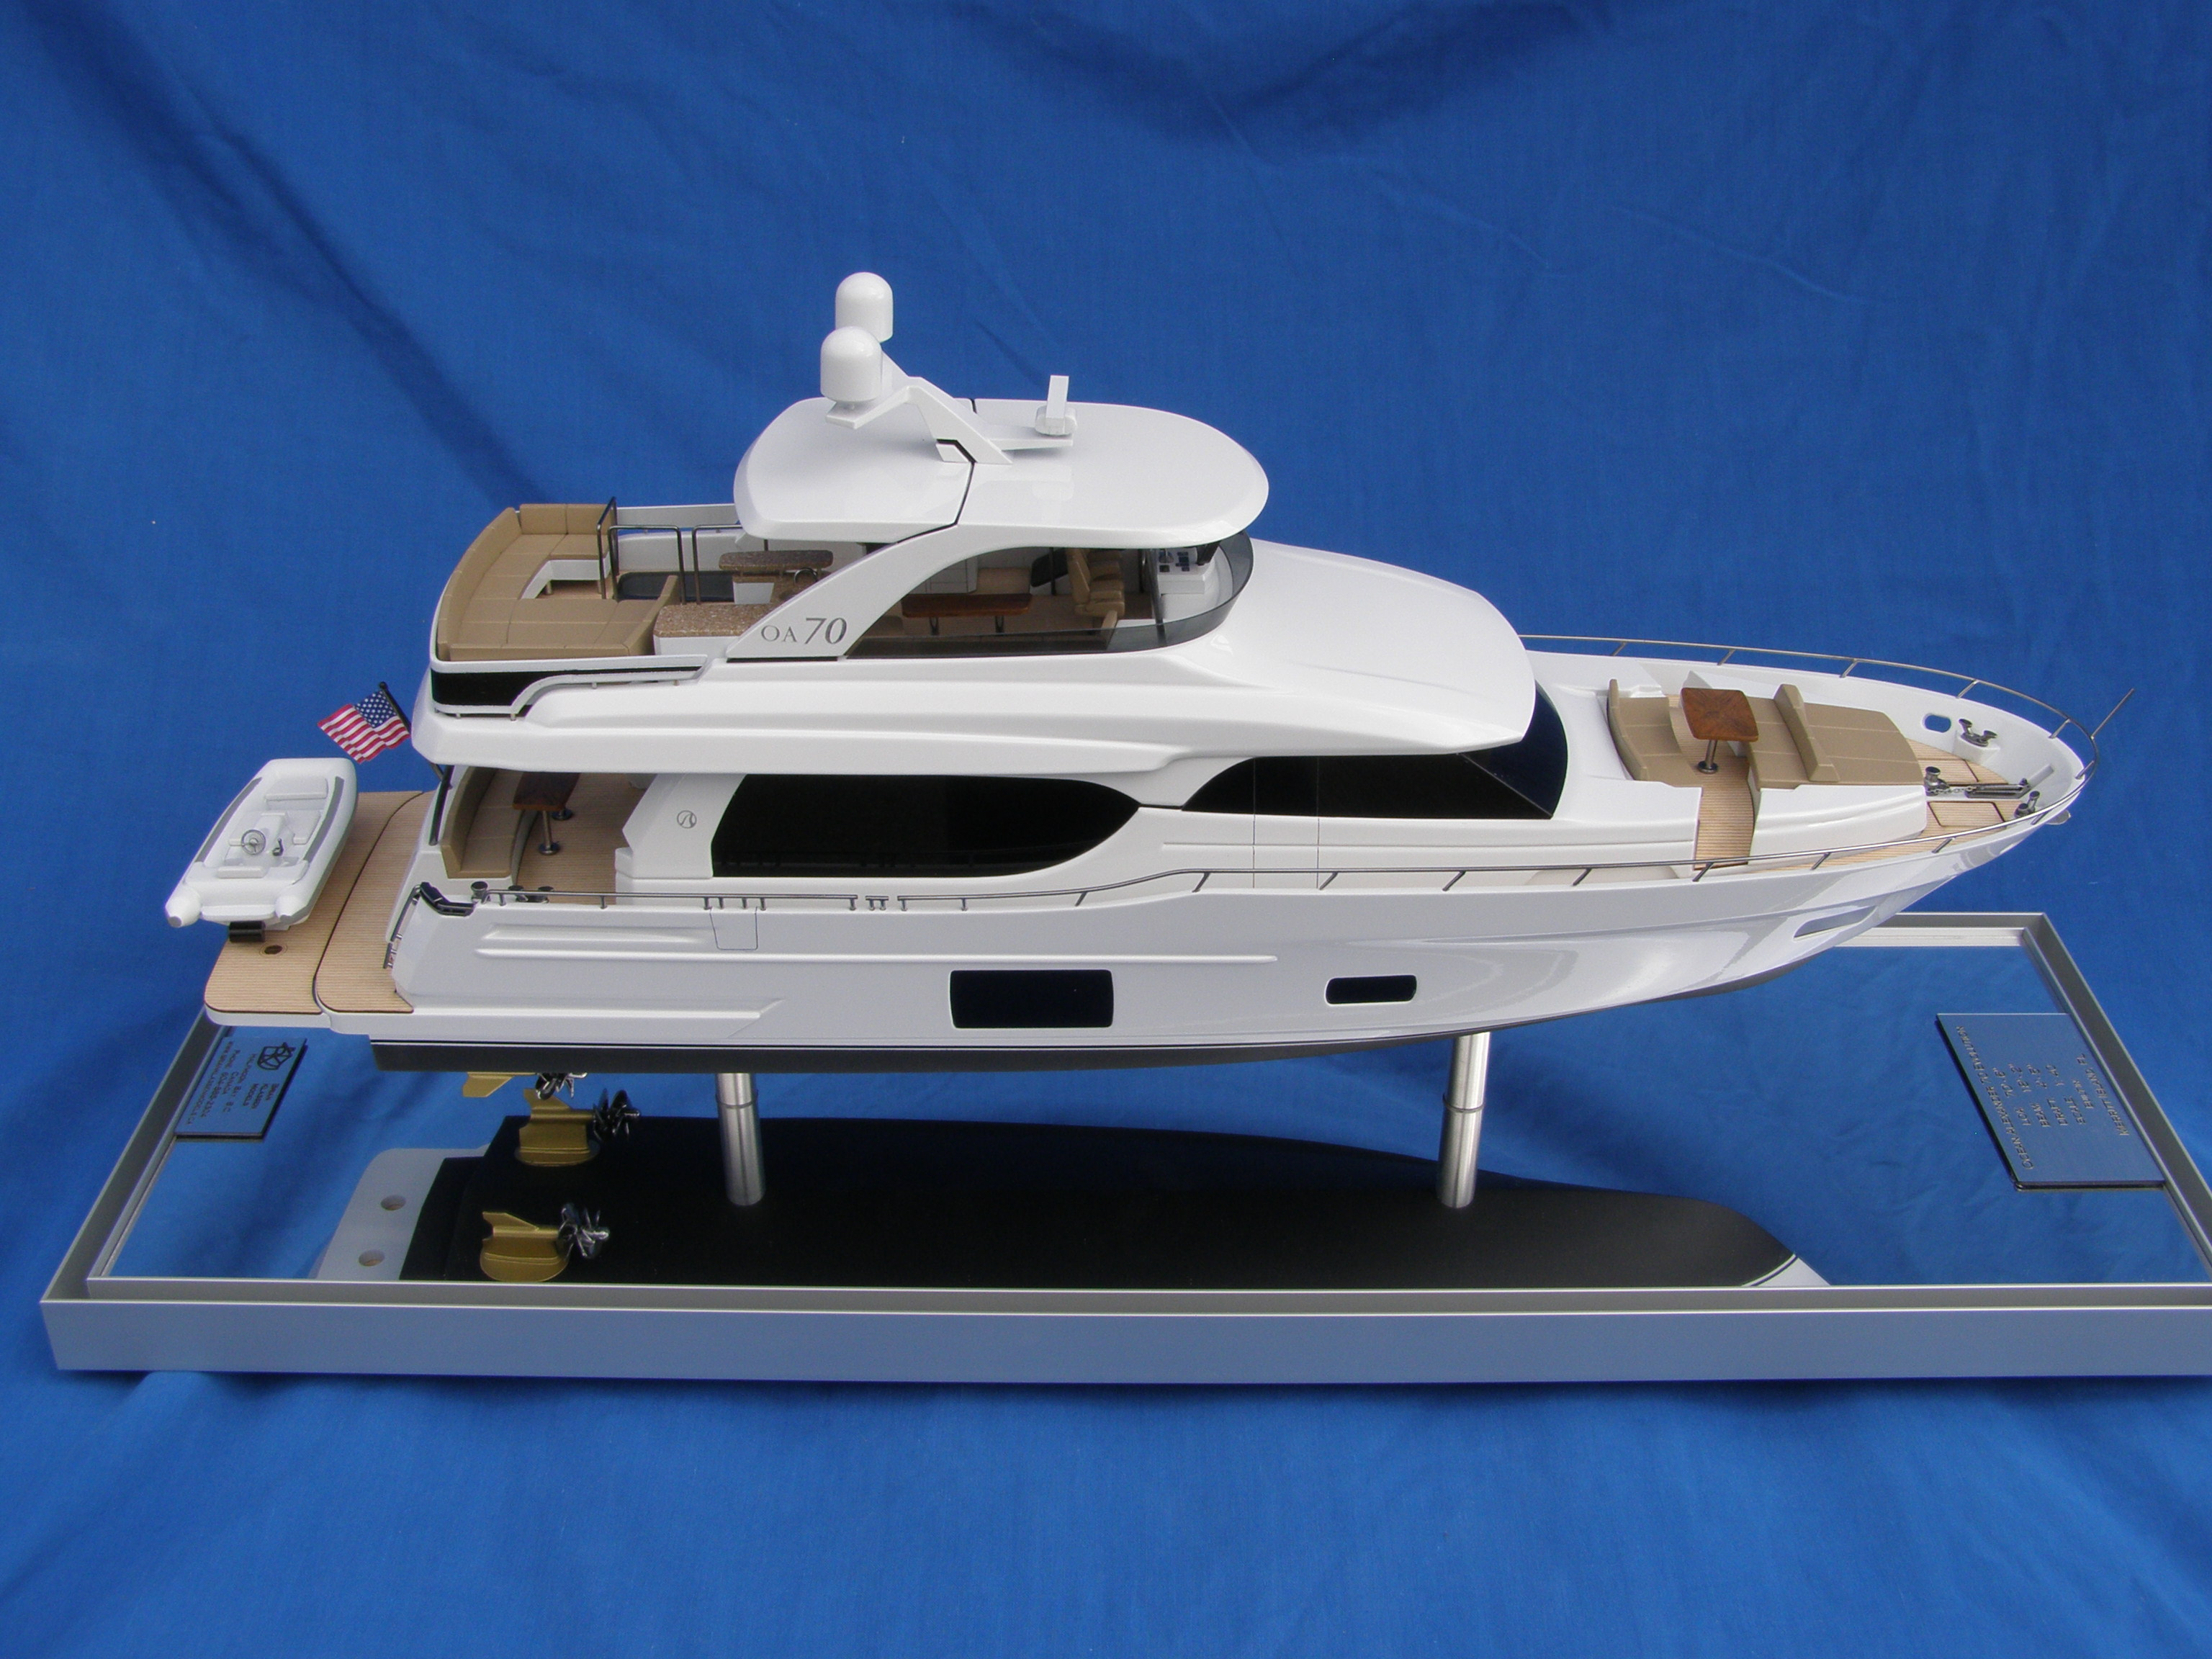 Model superyachts news luxury yachts charter amp yachts for sale